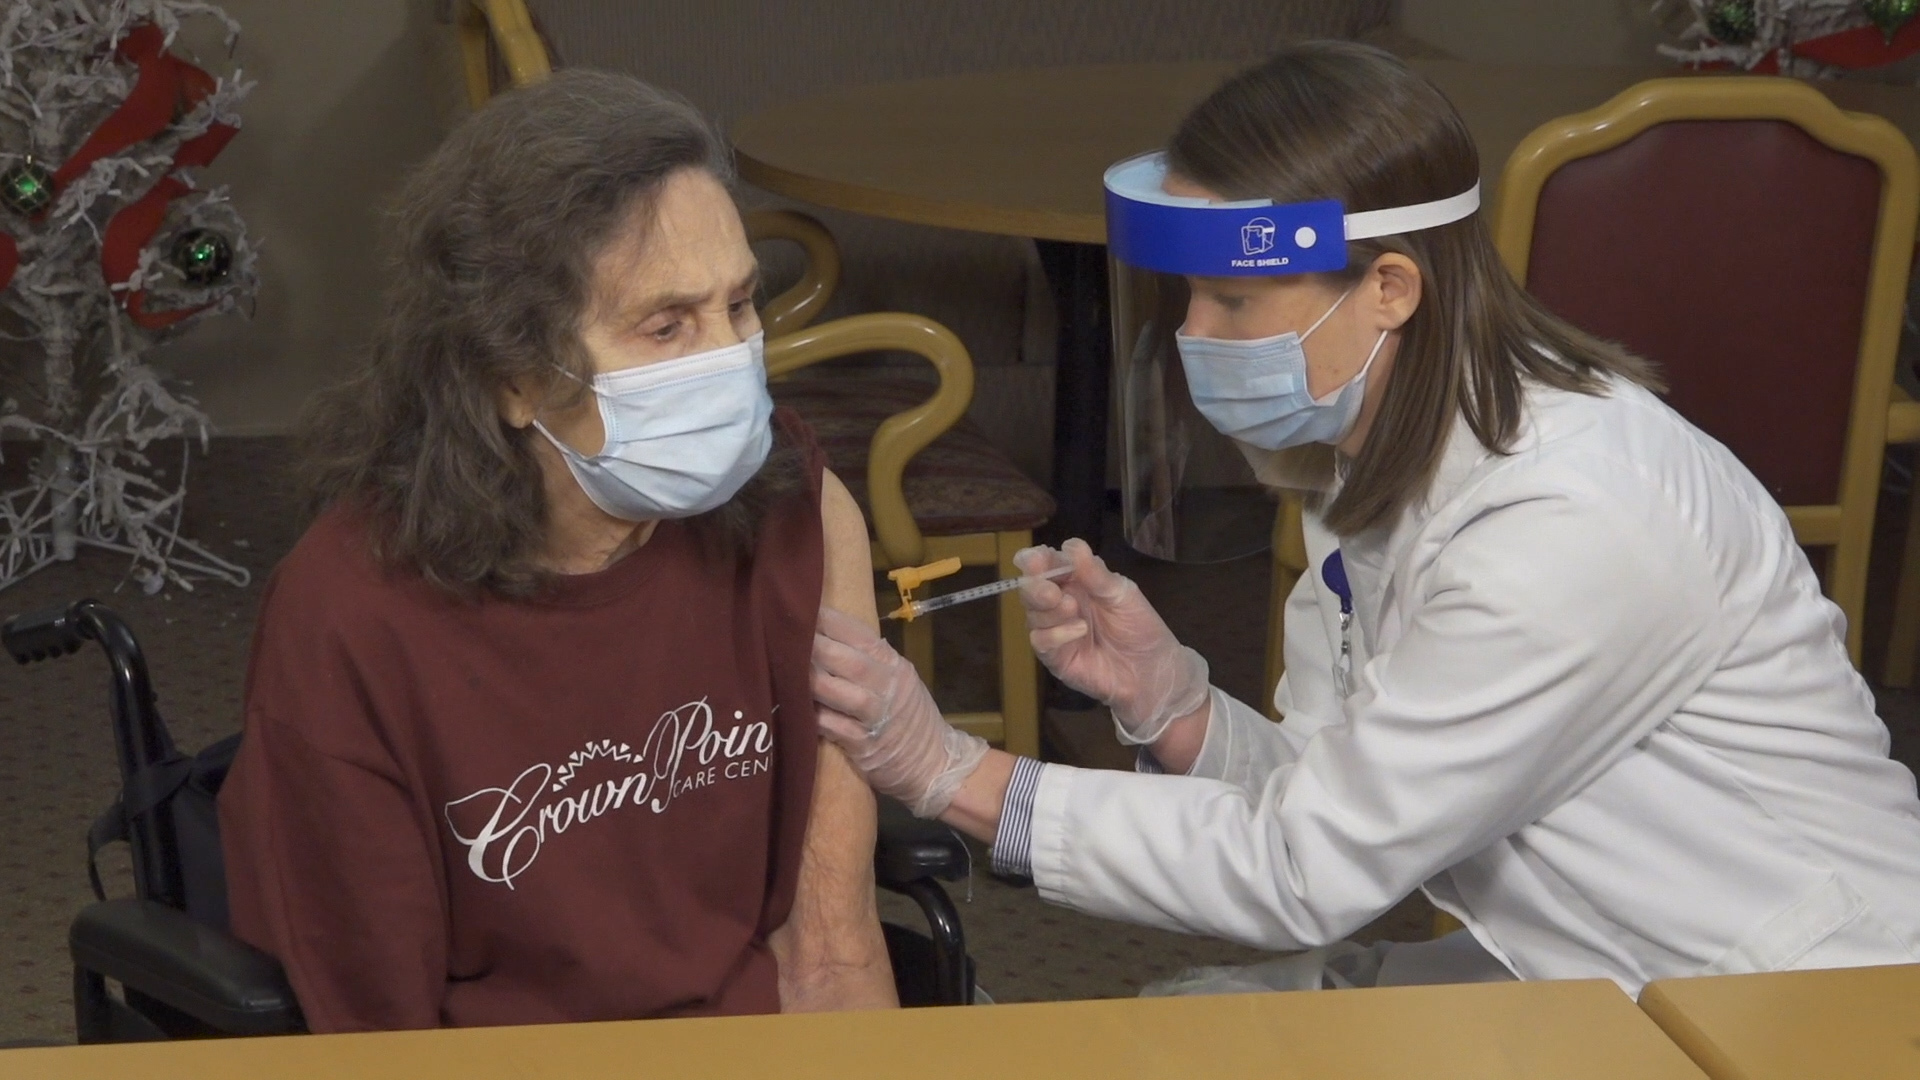 Pharmacist Kate Latta gives the Pfizer vaccine for COVID-19 to Rebecca Meeker, a 78-year-old resident of Crown Pointe Care Center in Columbus, Ohio, on Dec. 18, 2020.